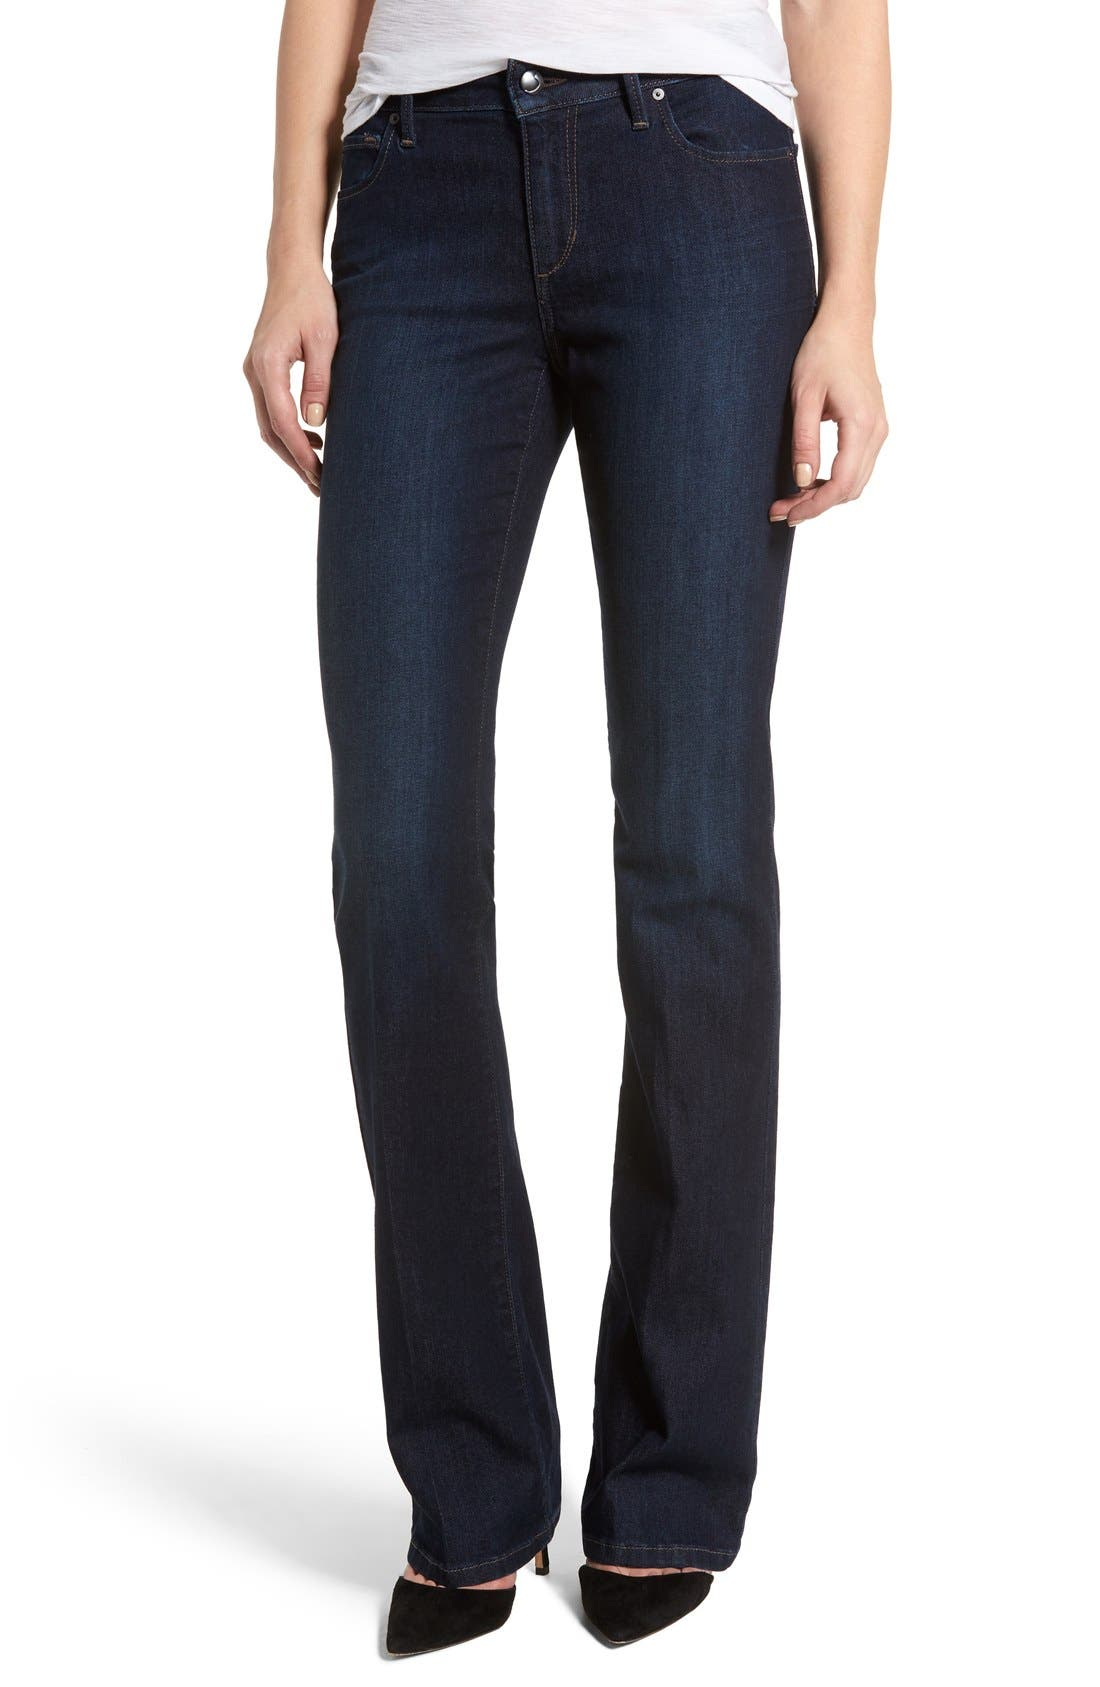 Joe S Honey Curvy Bootcut Jeans Loreyn Nordstrom